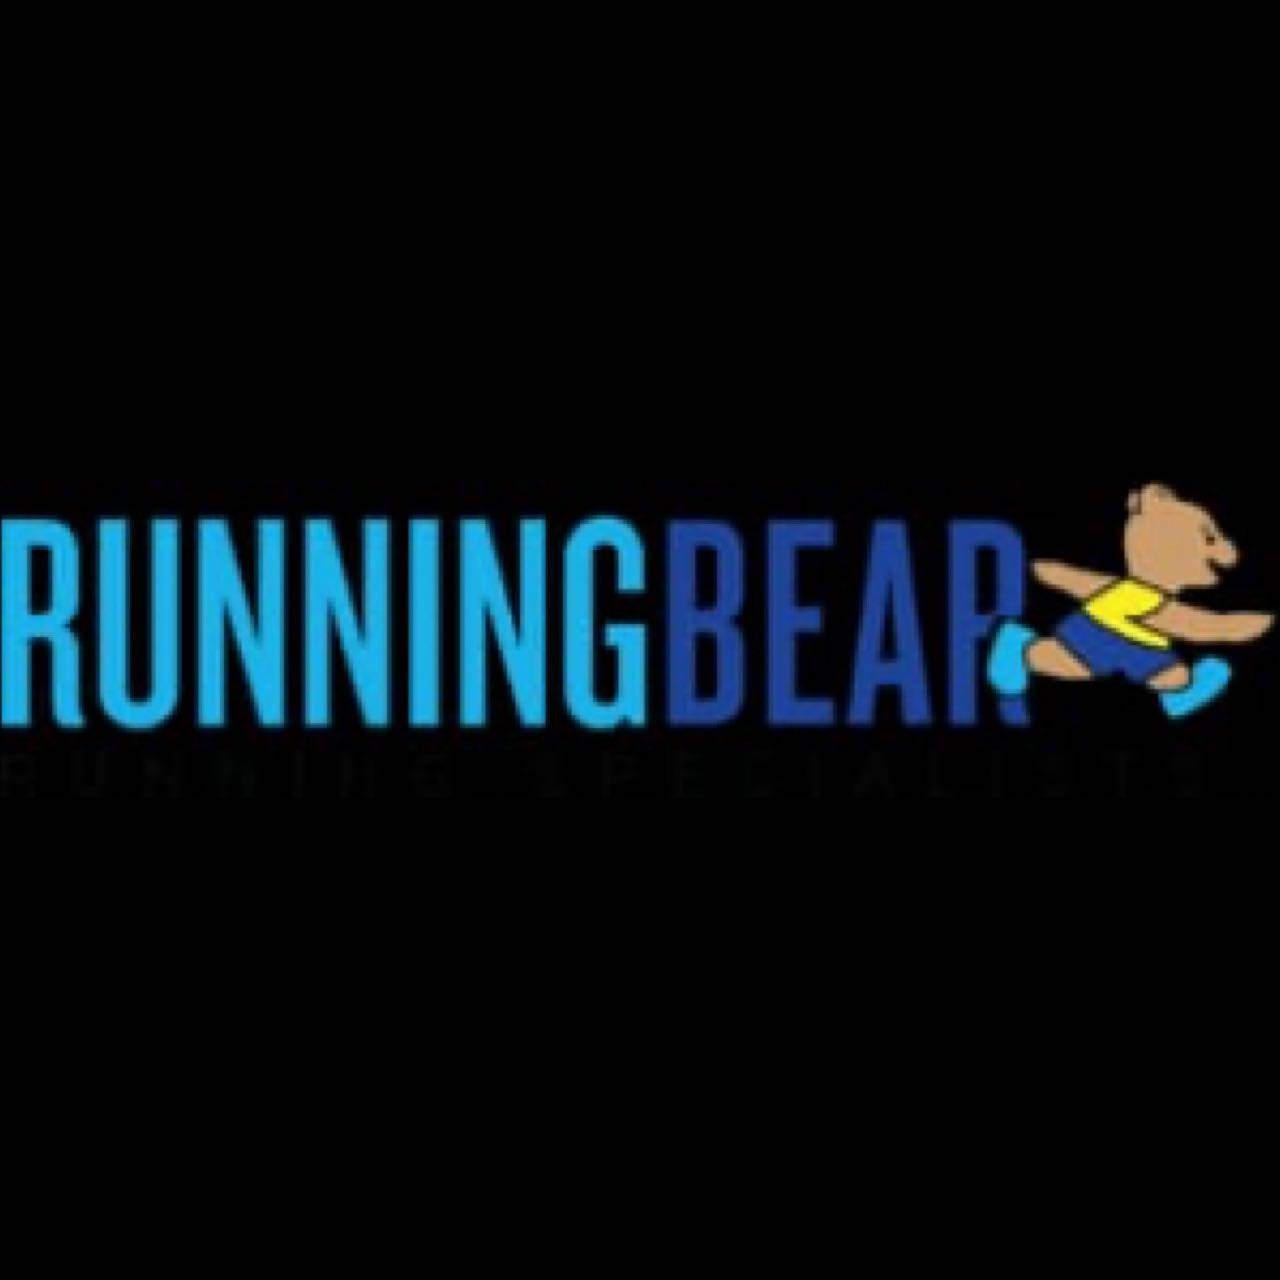 Running Bear are our go-to Macclesfield-based running shop, for shoes, gear and expert advice. A ...